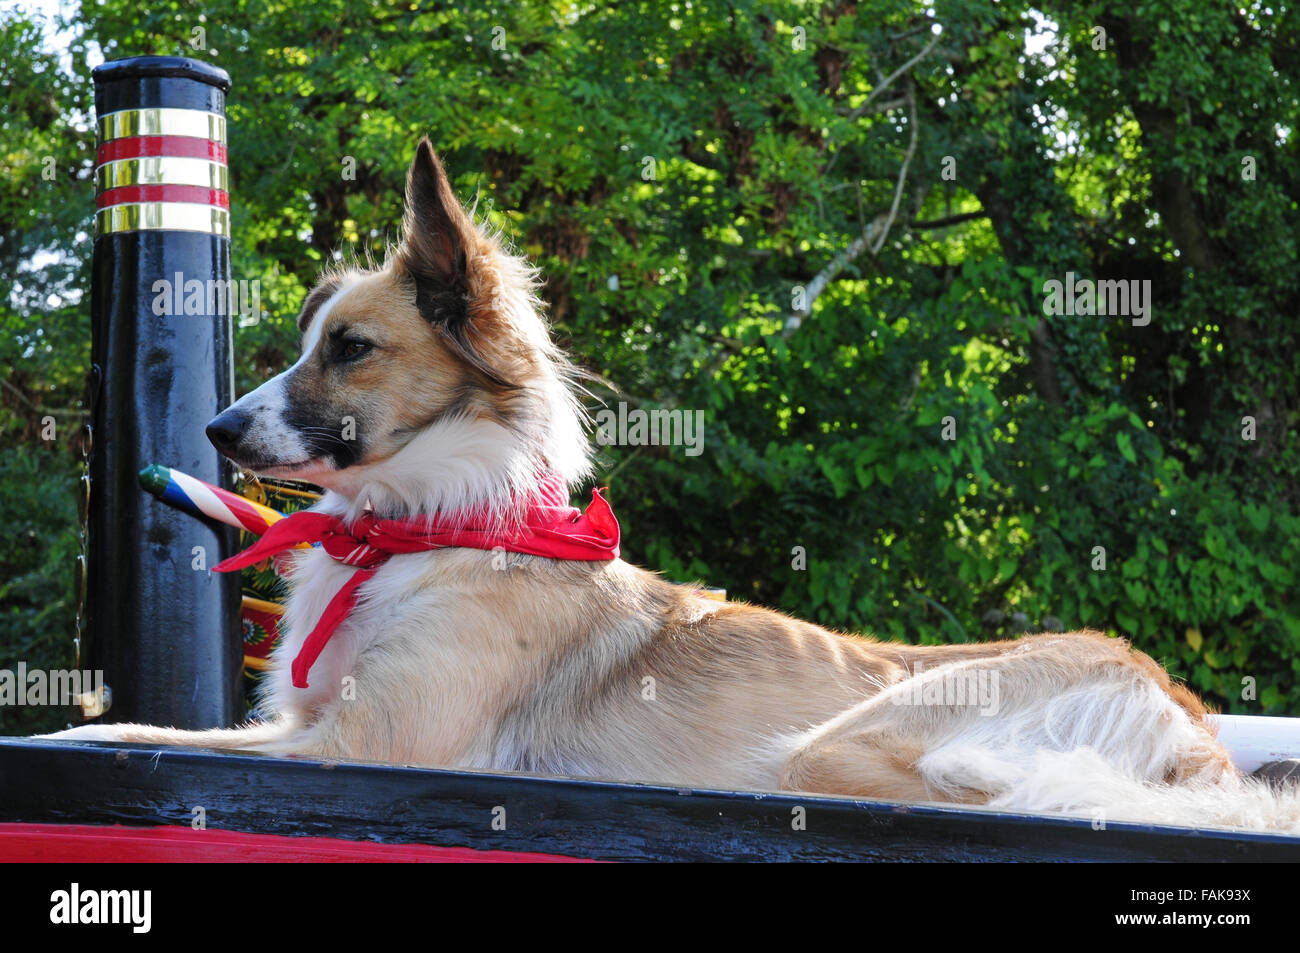 Dog wearing red neckerchief on the top of a barge.  The Tivertonian, Grand Western Canal. - Stock Image